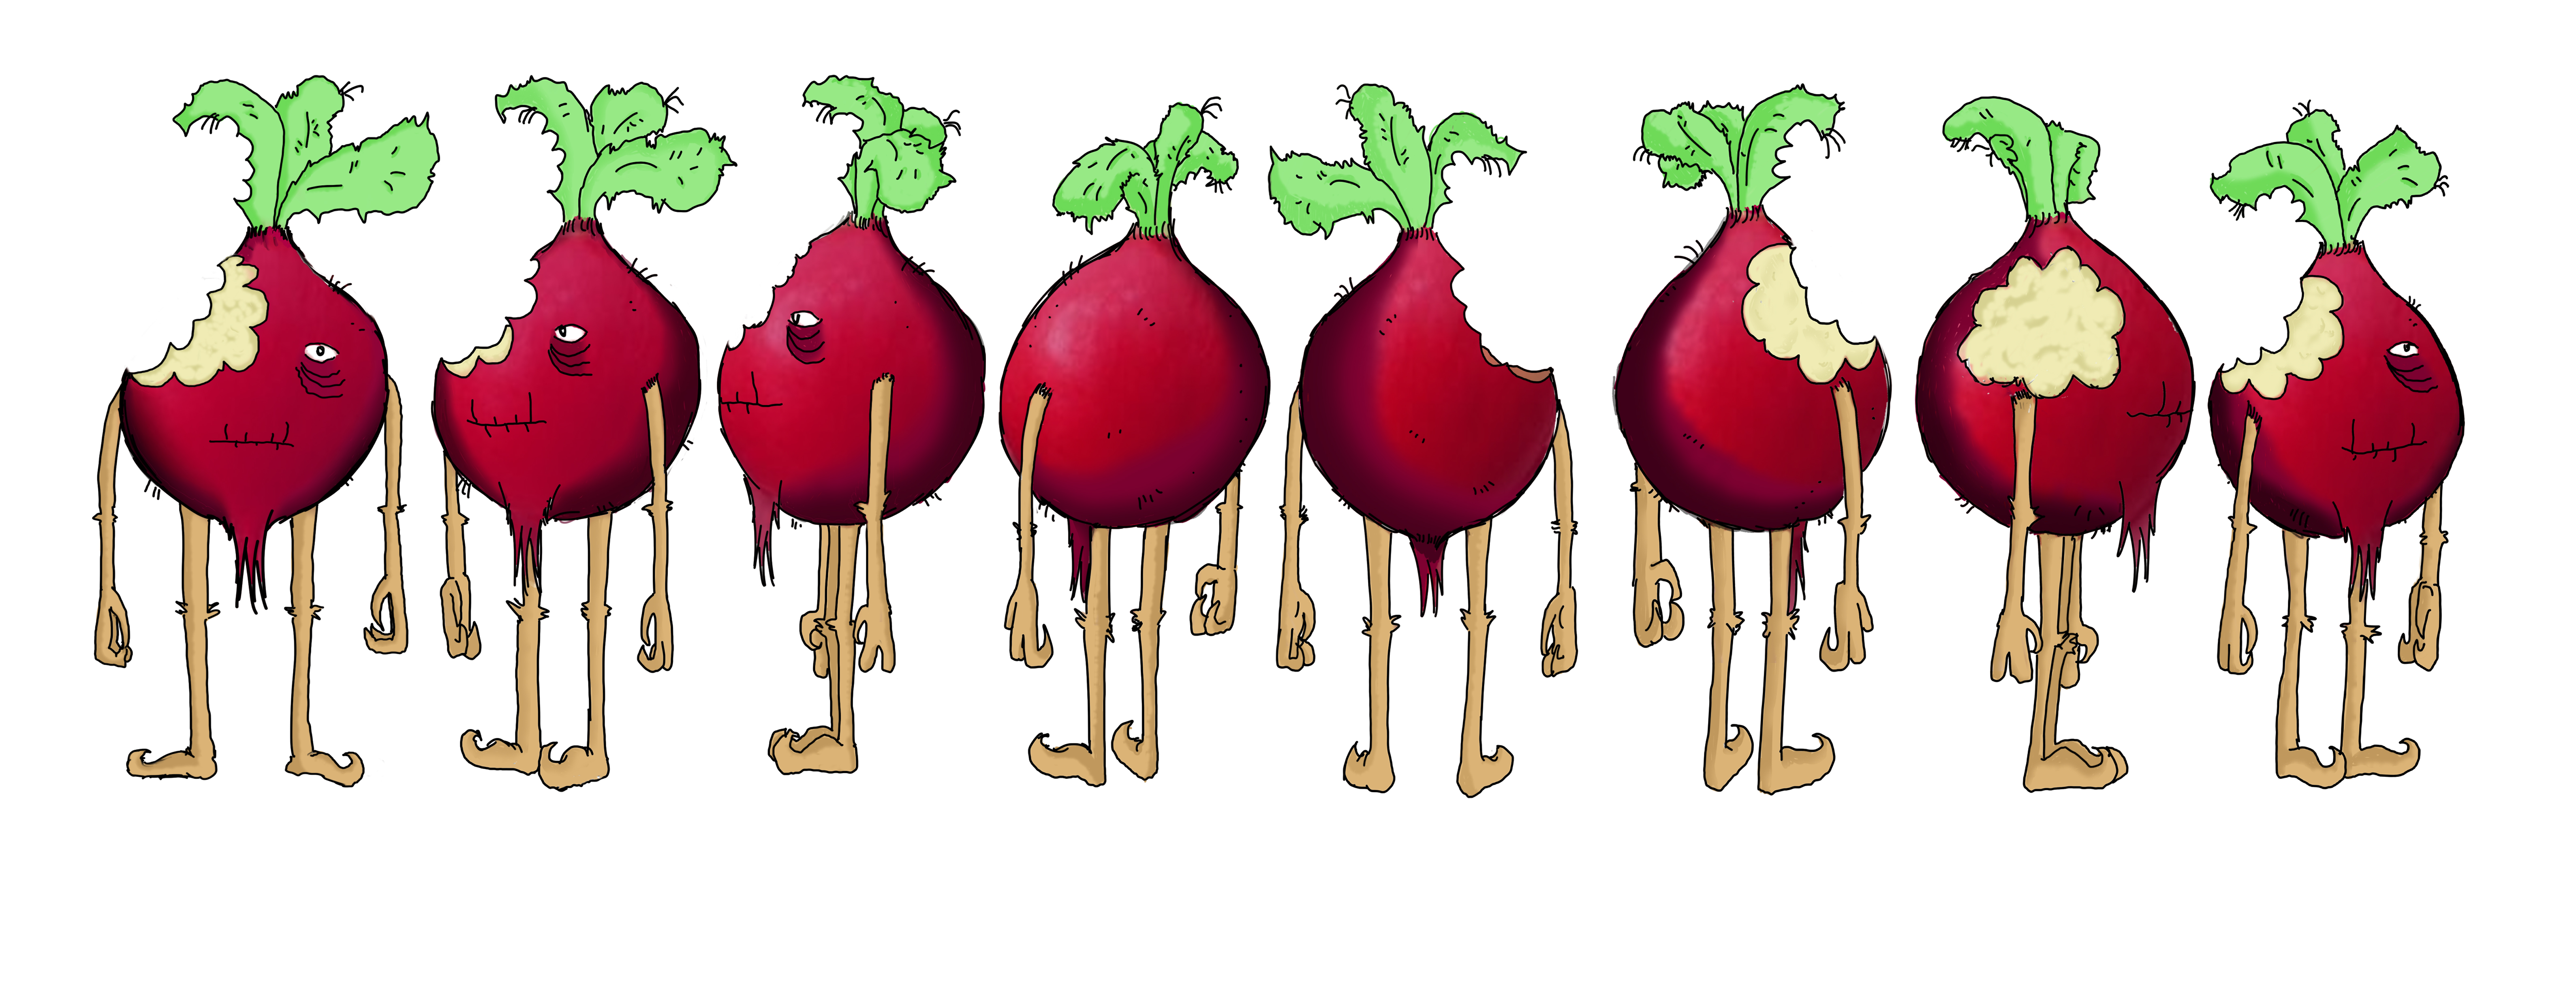 Rodney the Radish - texture and detail